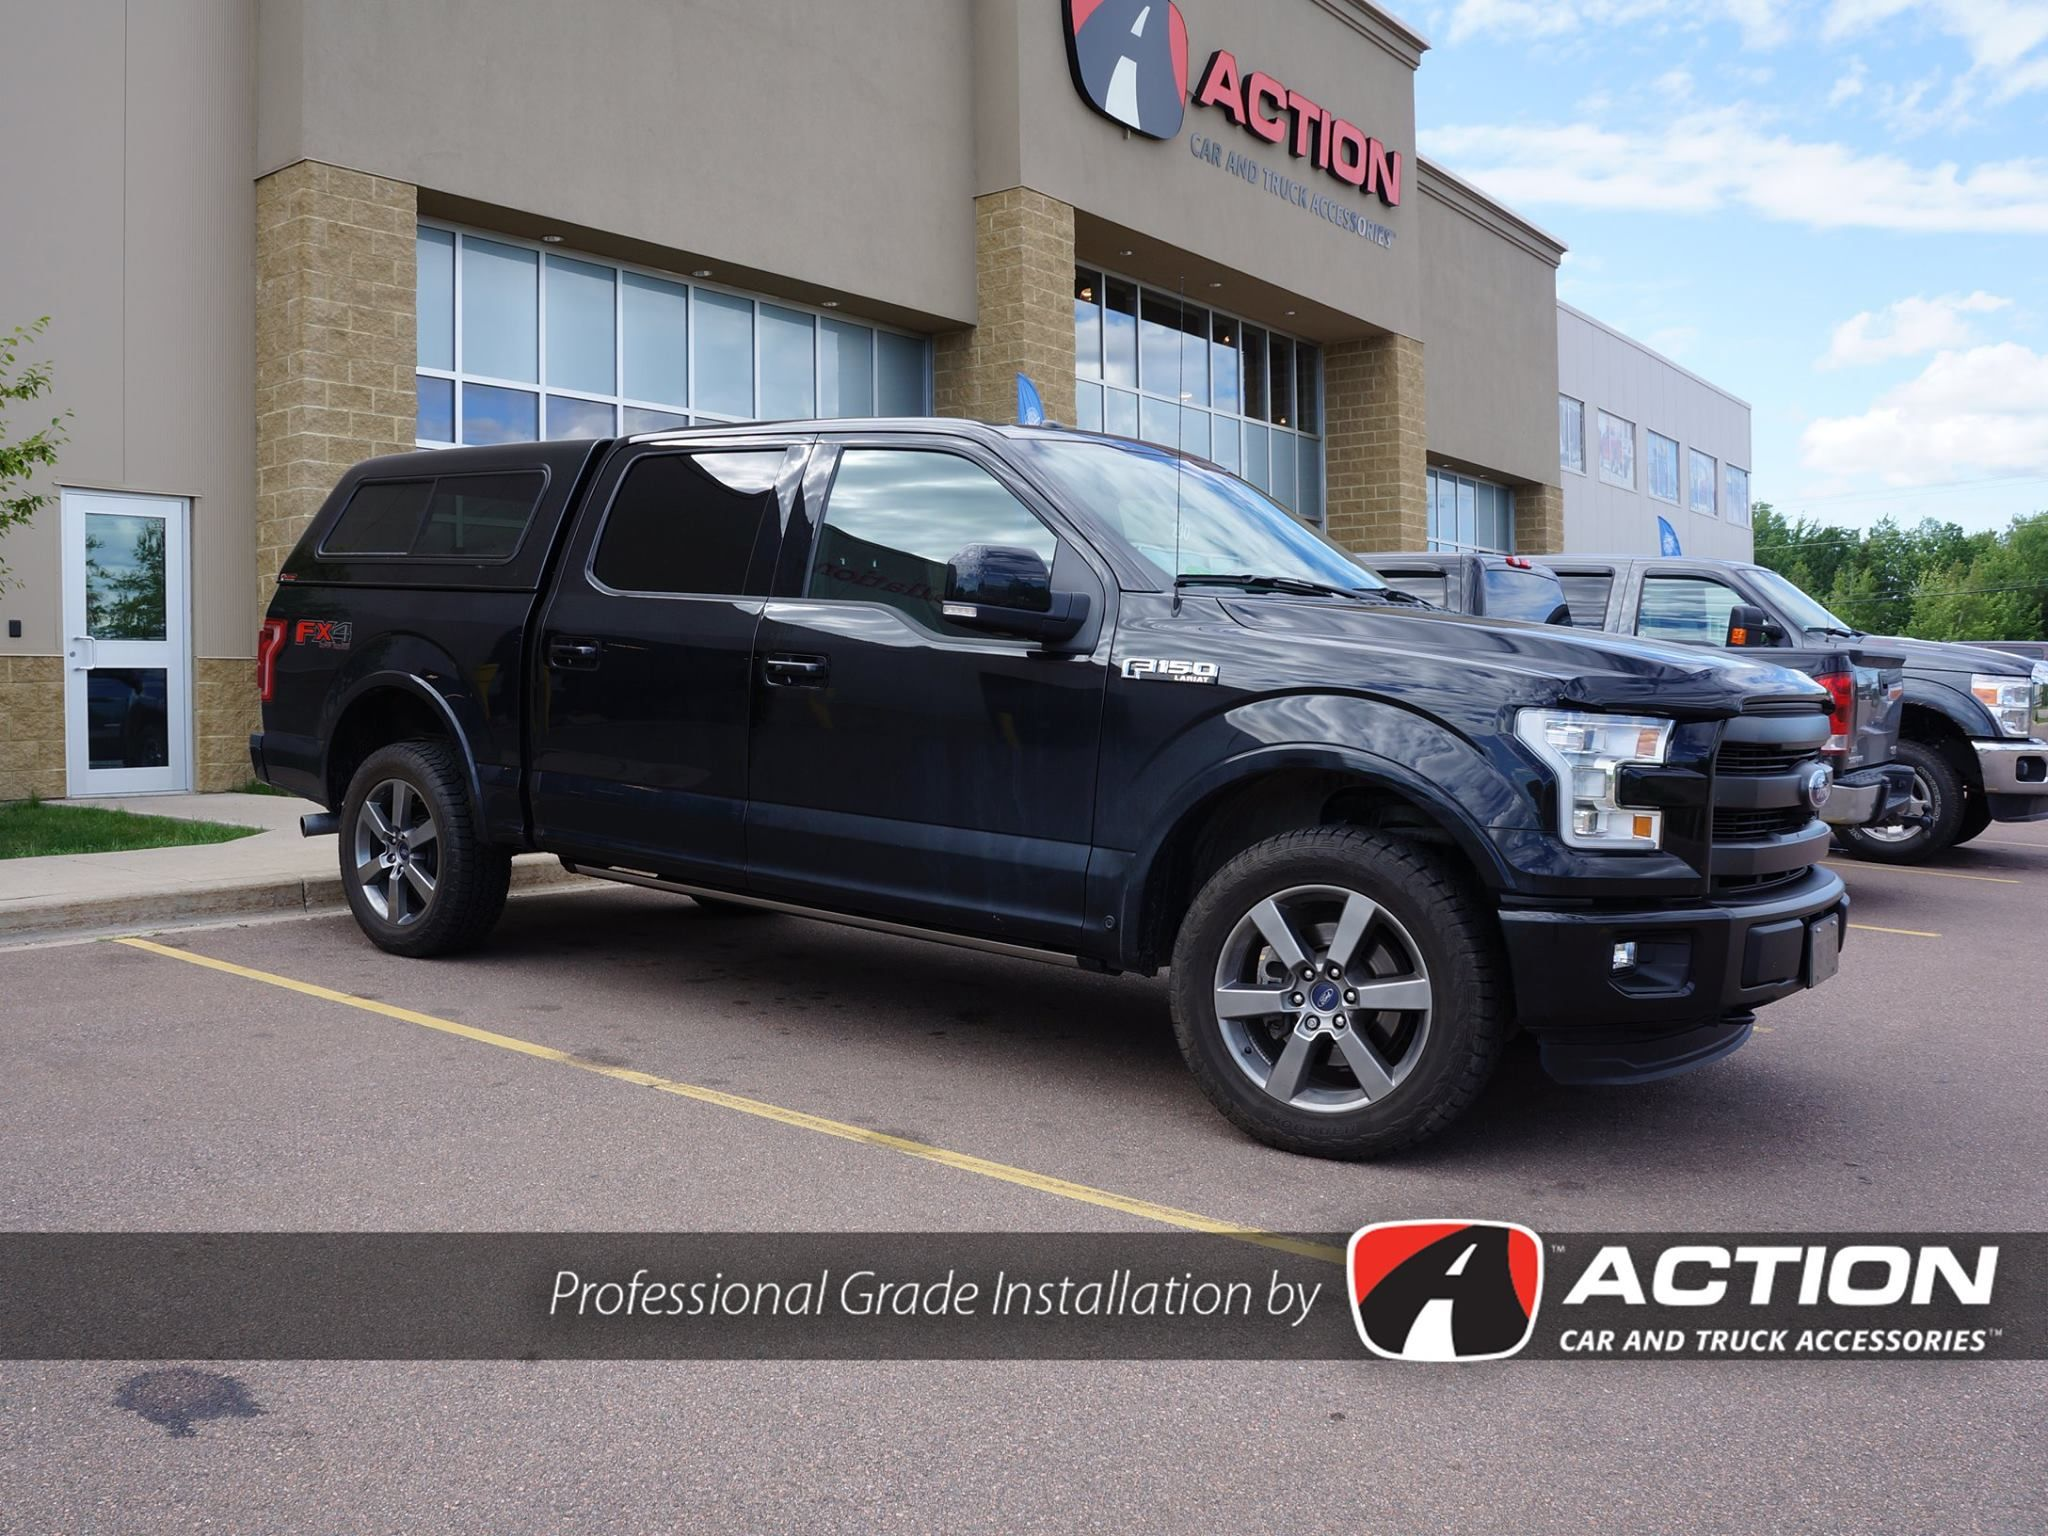 Contour iii cap installed on a new 2016 ford f150 lariat